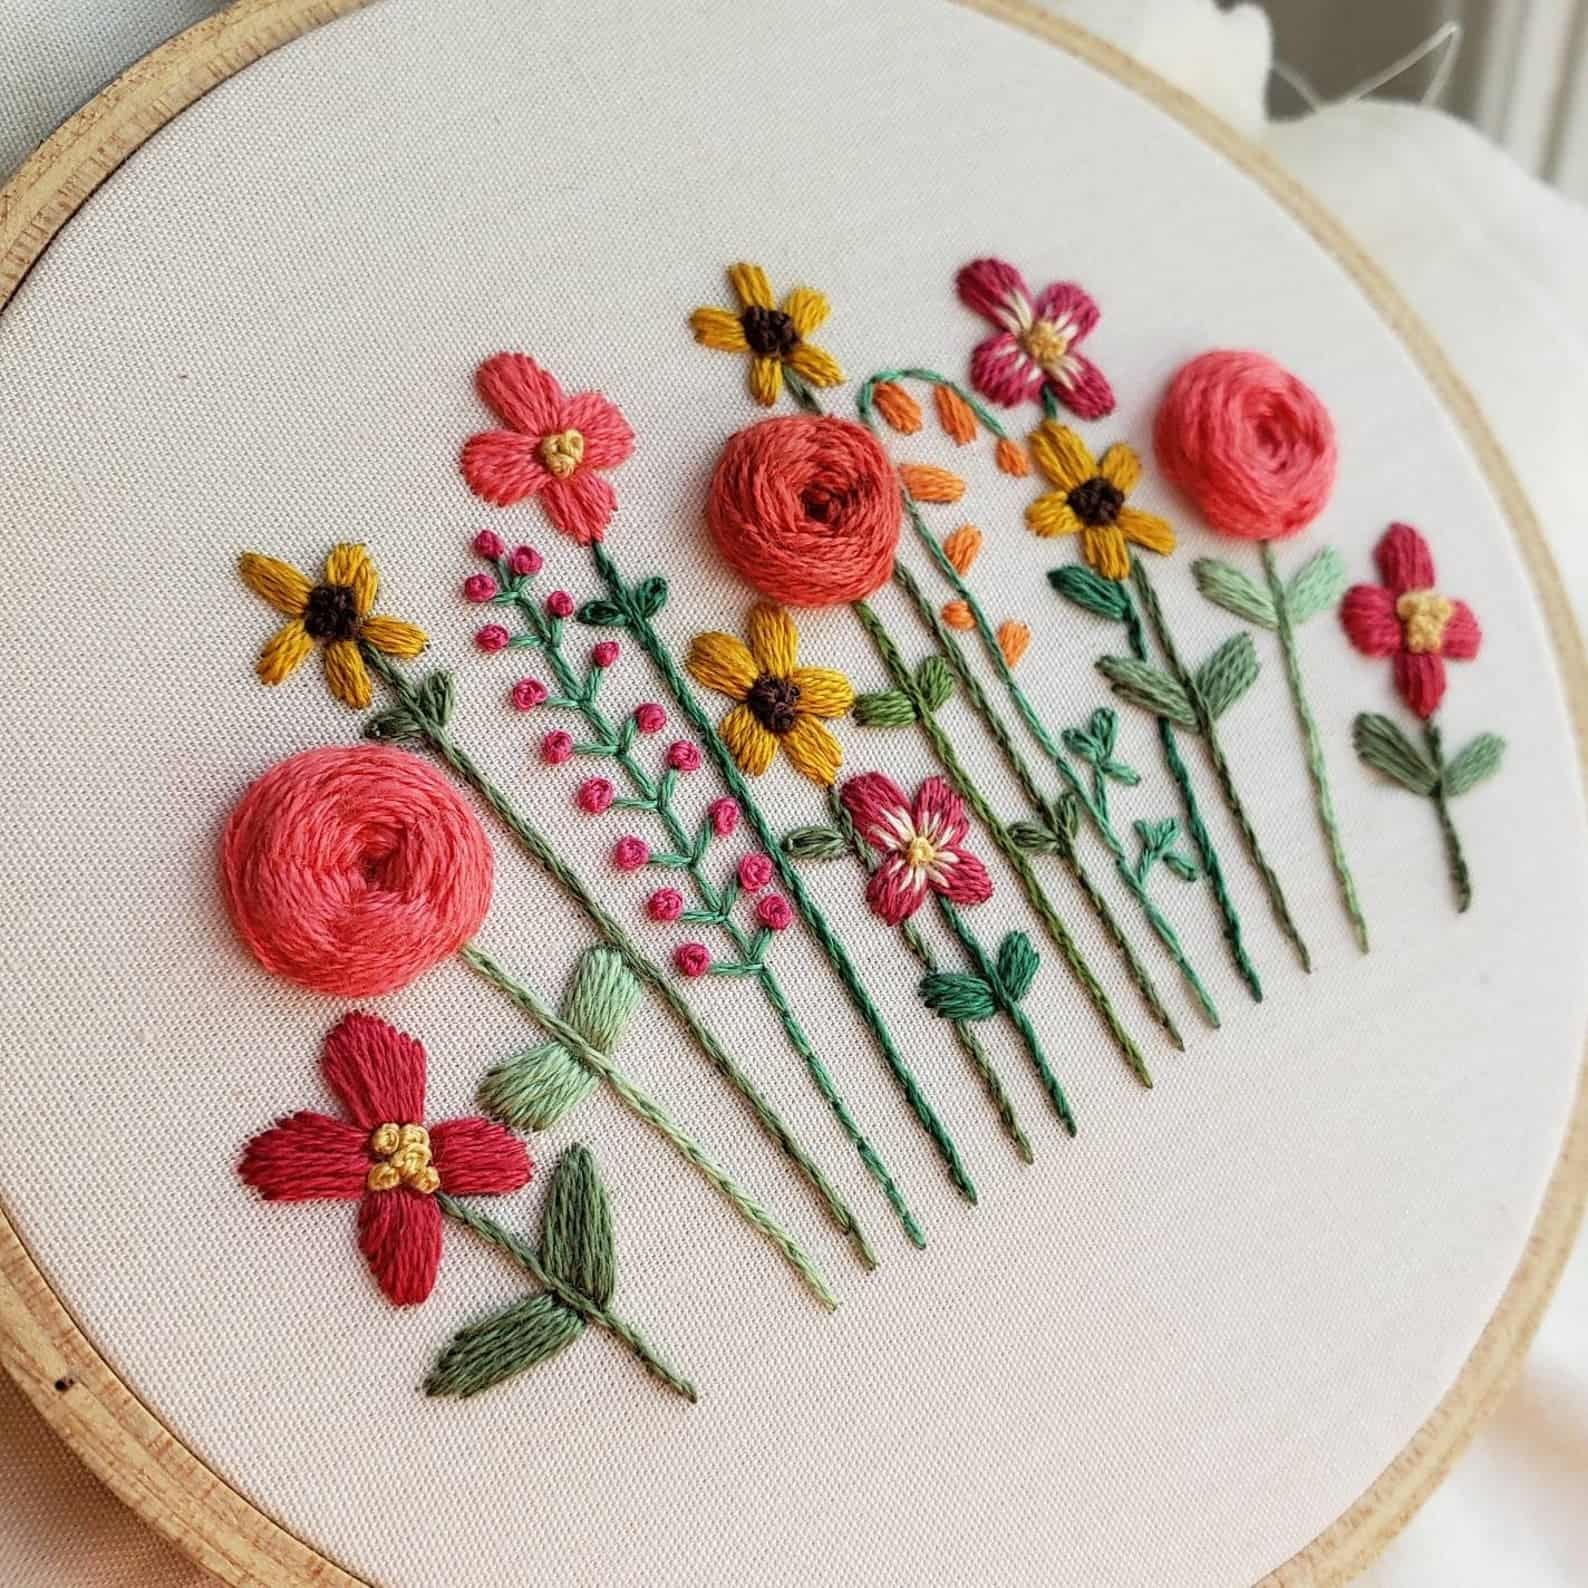 13 floral embroidery patterns to inspire your spring